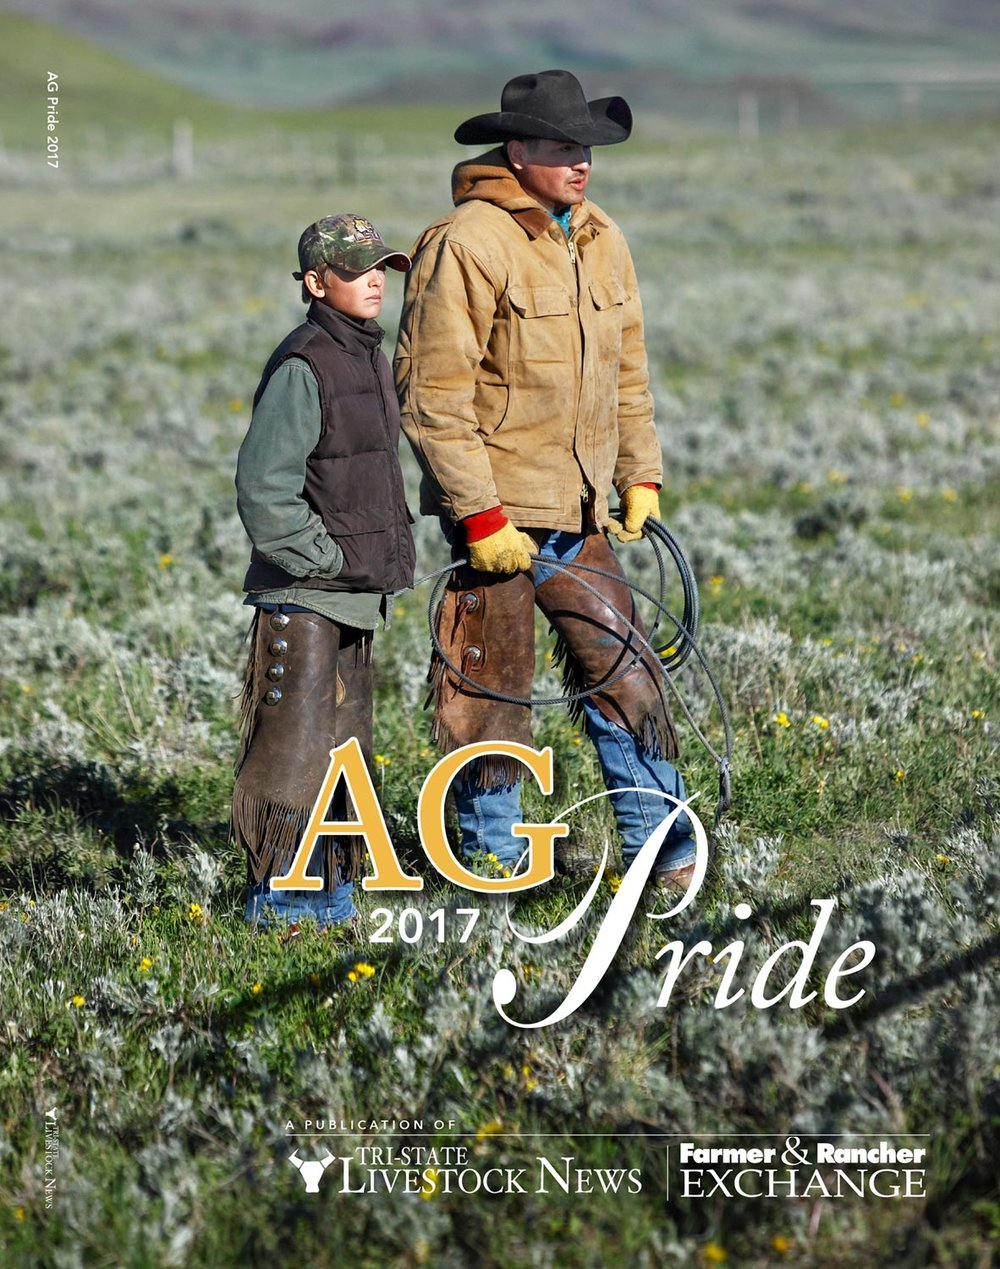 AG PRIDE COVER2017.indd